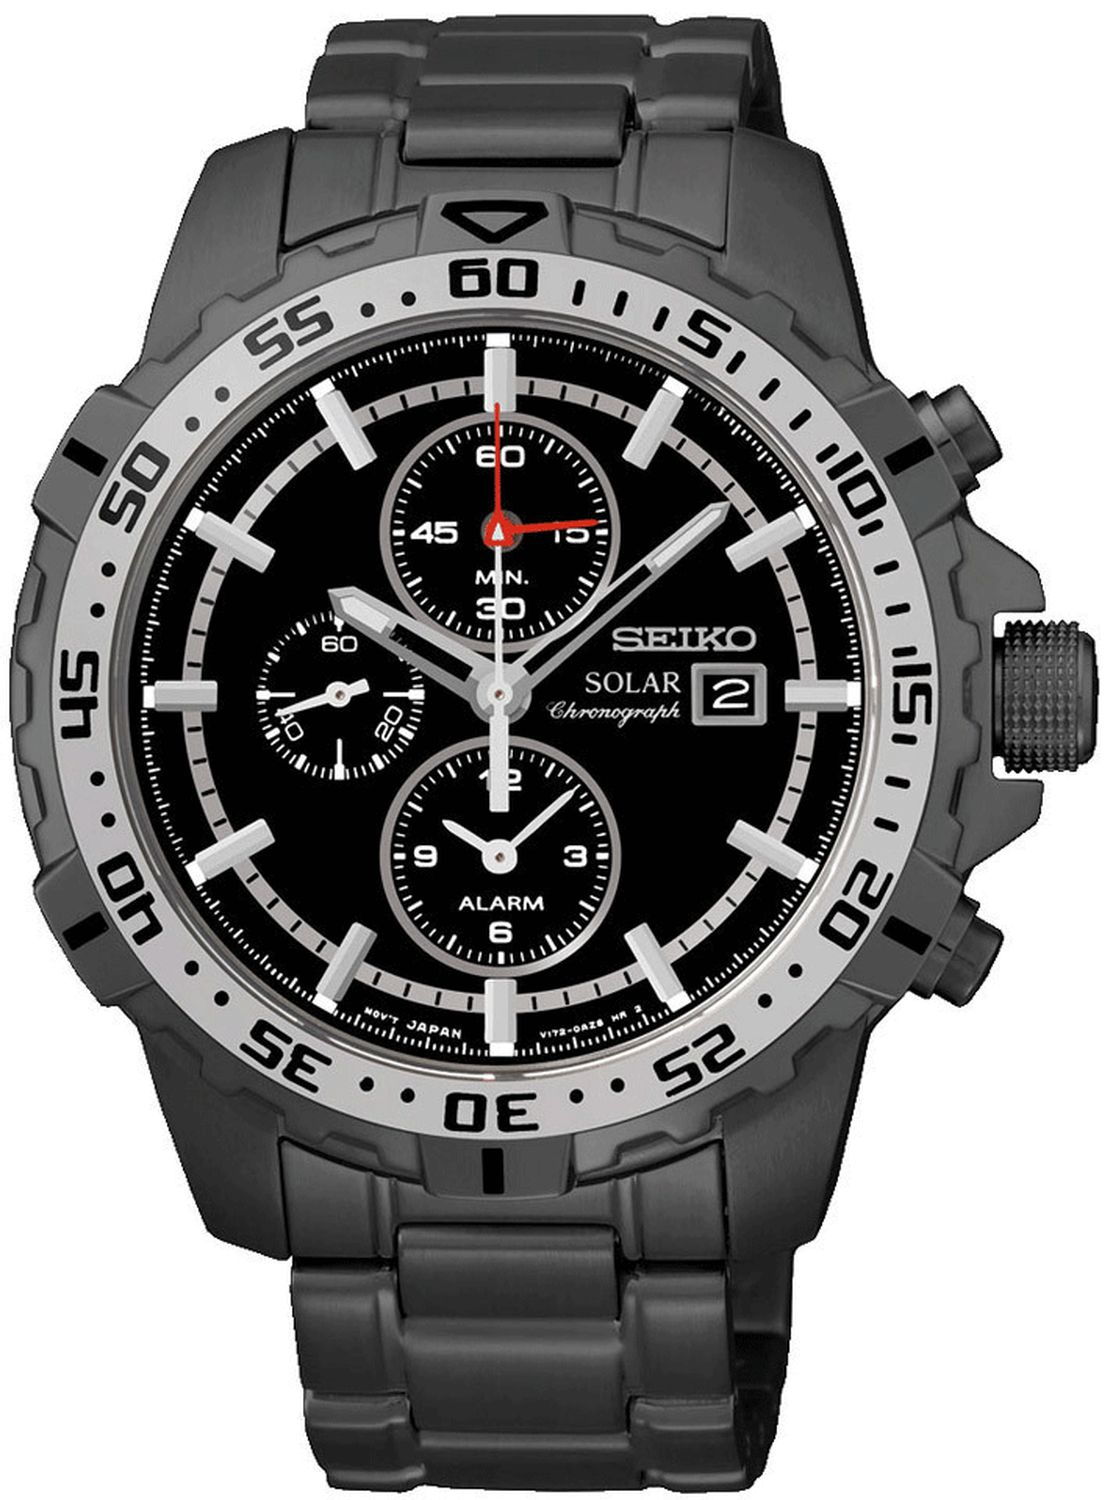 SEIKO SOLAR CHRONOGRAPH MENS WATCH SSC301P1